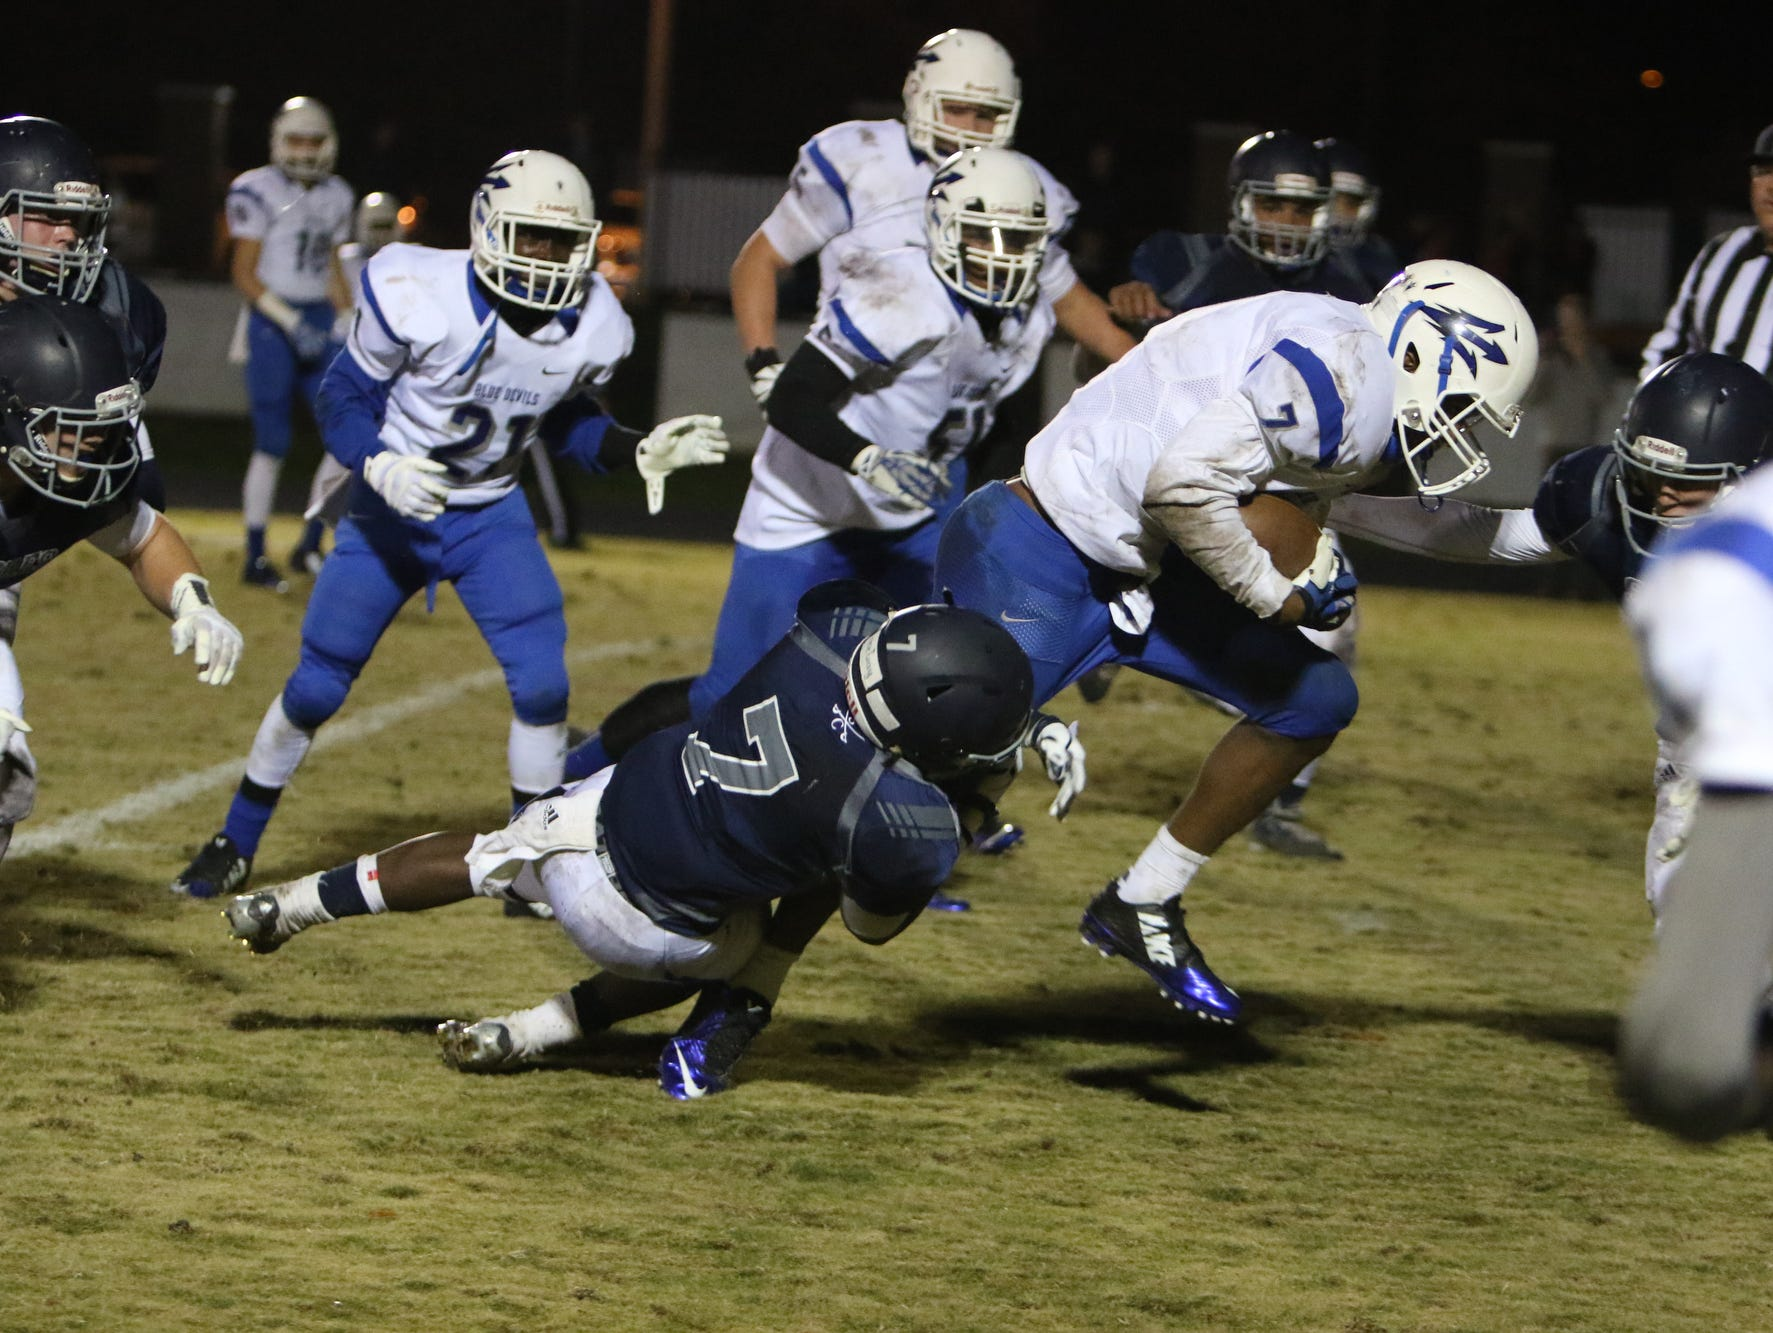 Southside Christian School's Quintyn Reeder(7) brings Williston-Elko's Shakur Chisolm(7) down. Southside Christian School hosted Williston-Elko High for the second round of the 1-A Playoffs.